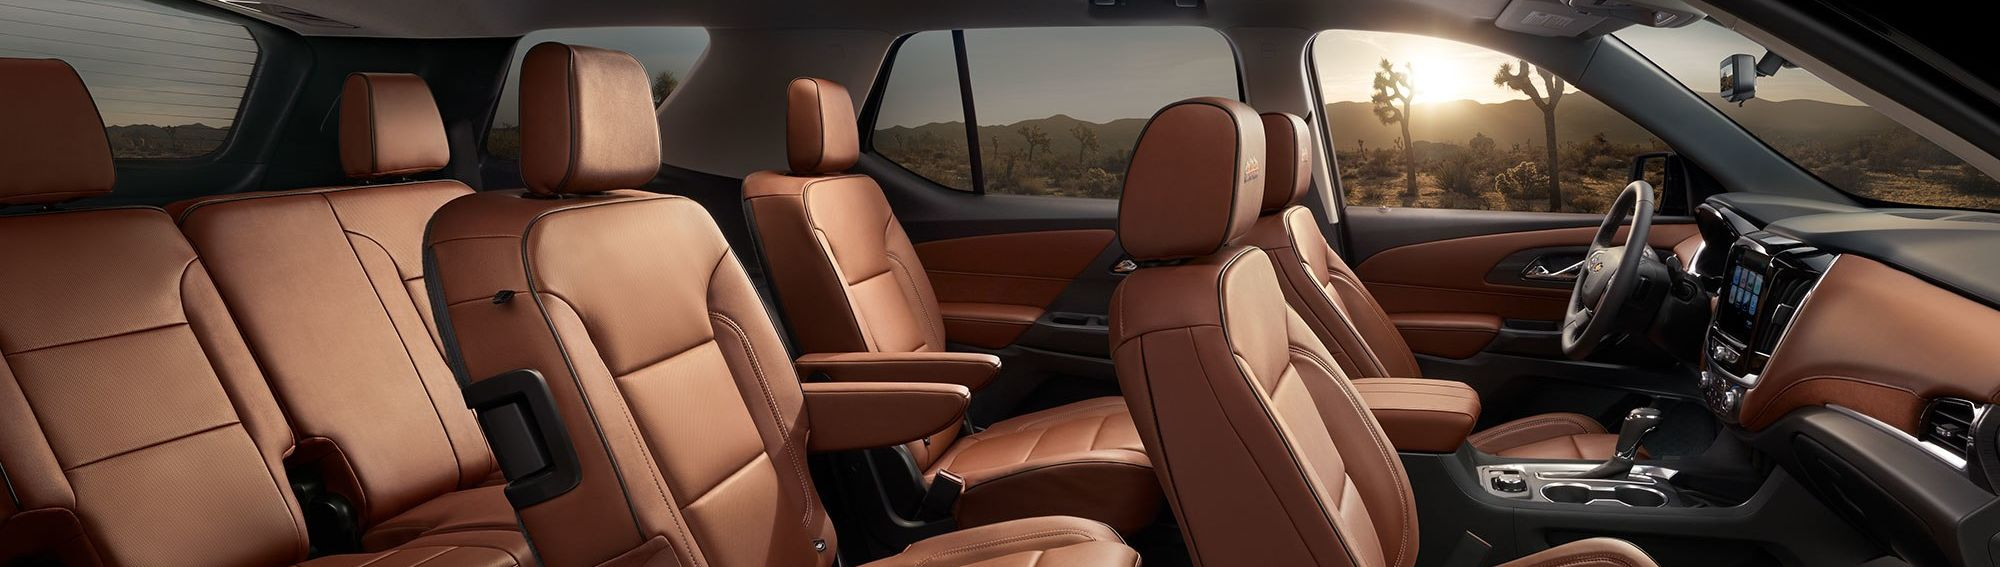 2019 Traverse Spacious Interior Seating